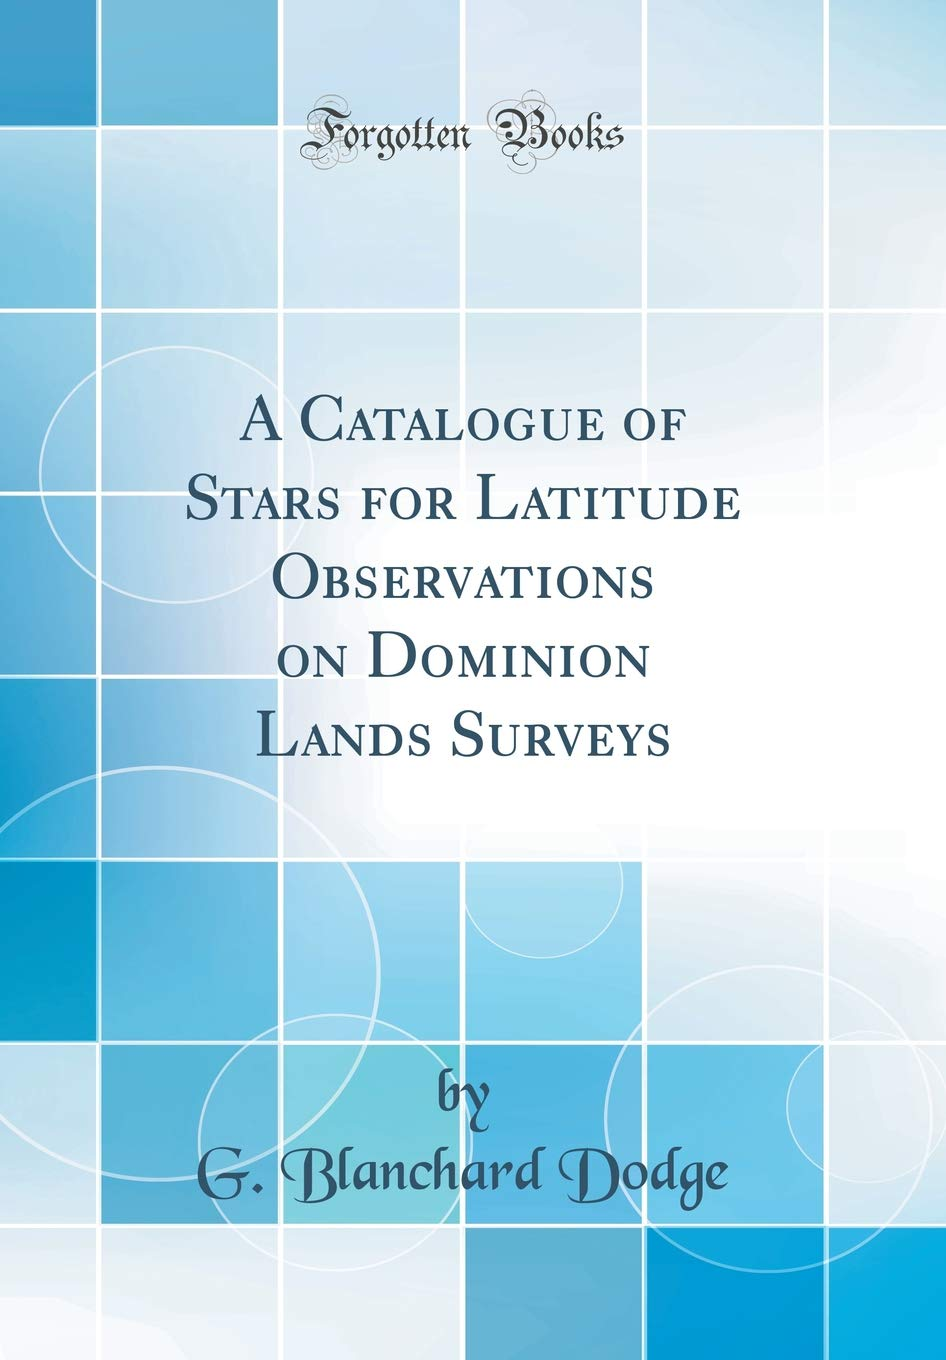 A Catalogue of Stars for Latitude Observations on Dominion